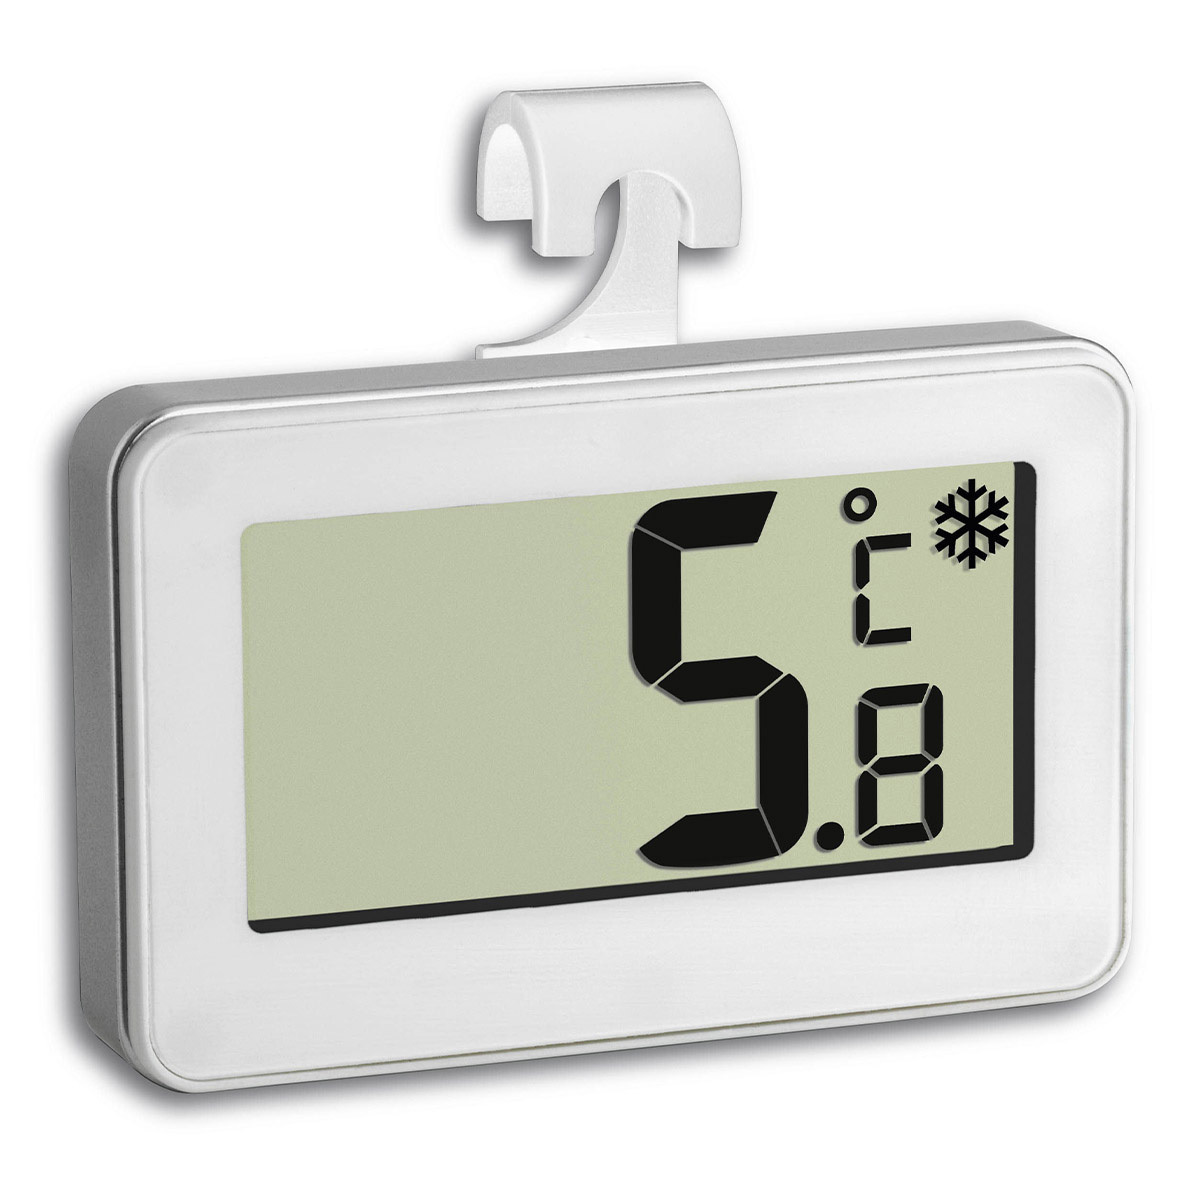 30-2028-02-digitales-thermometer-1200x1200px.jpg